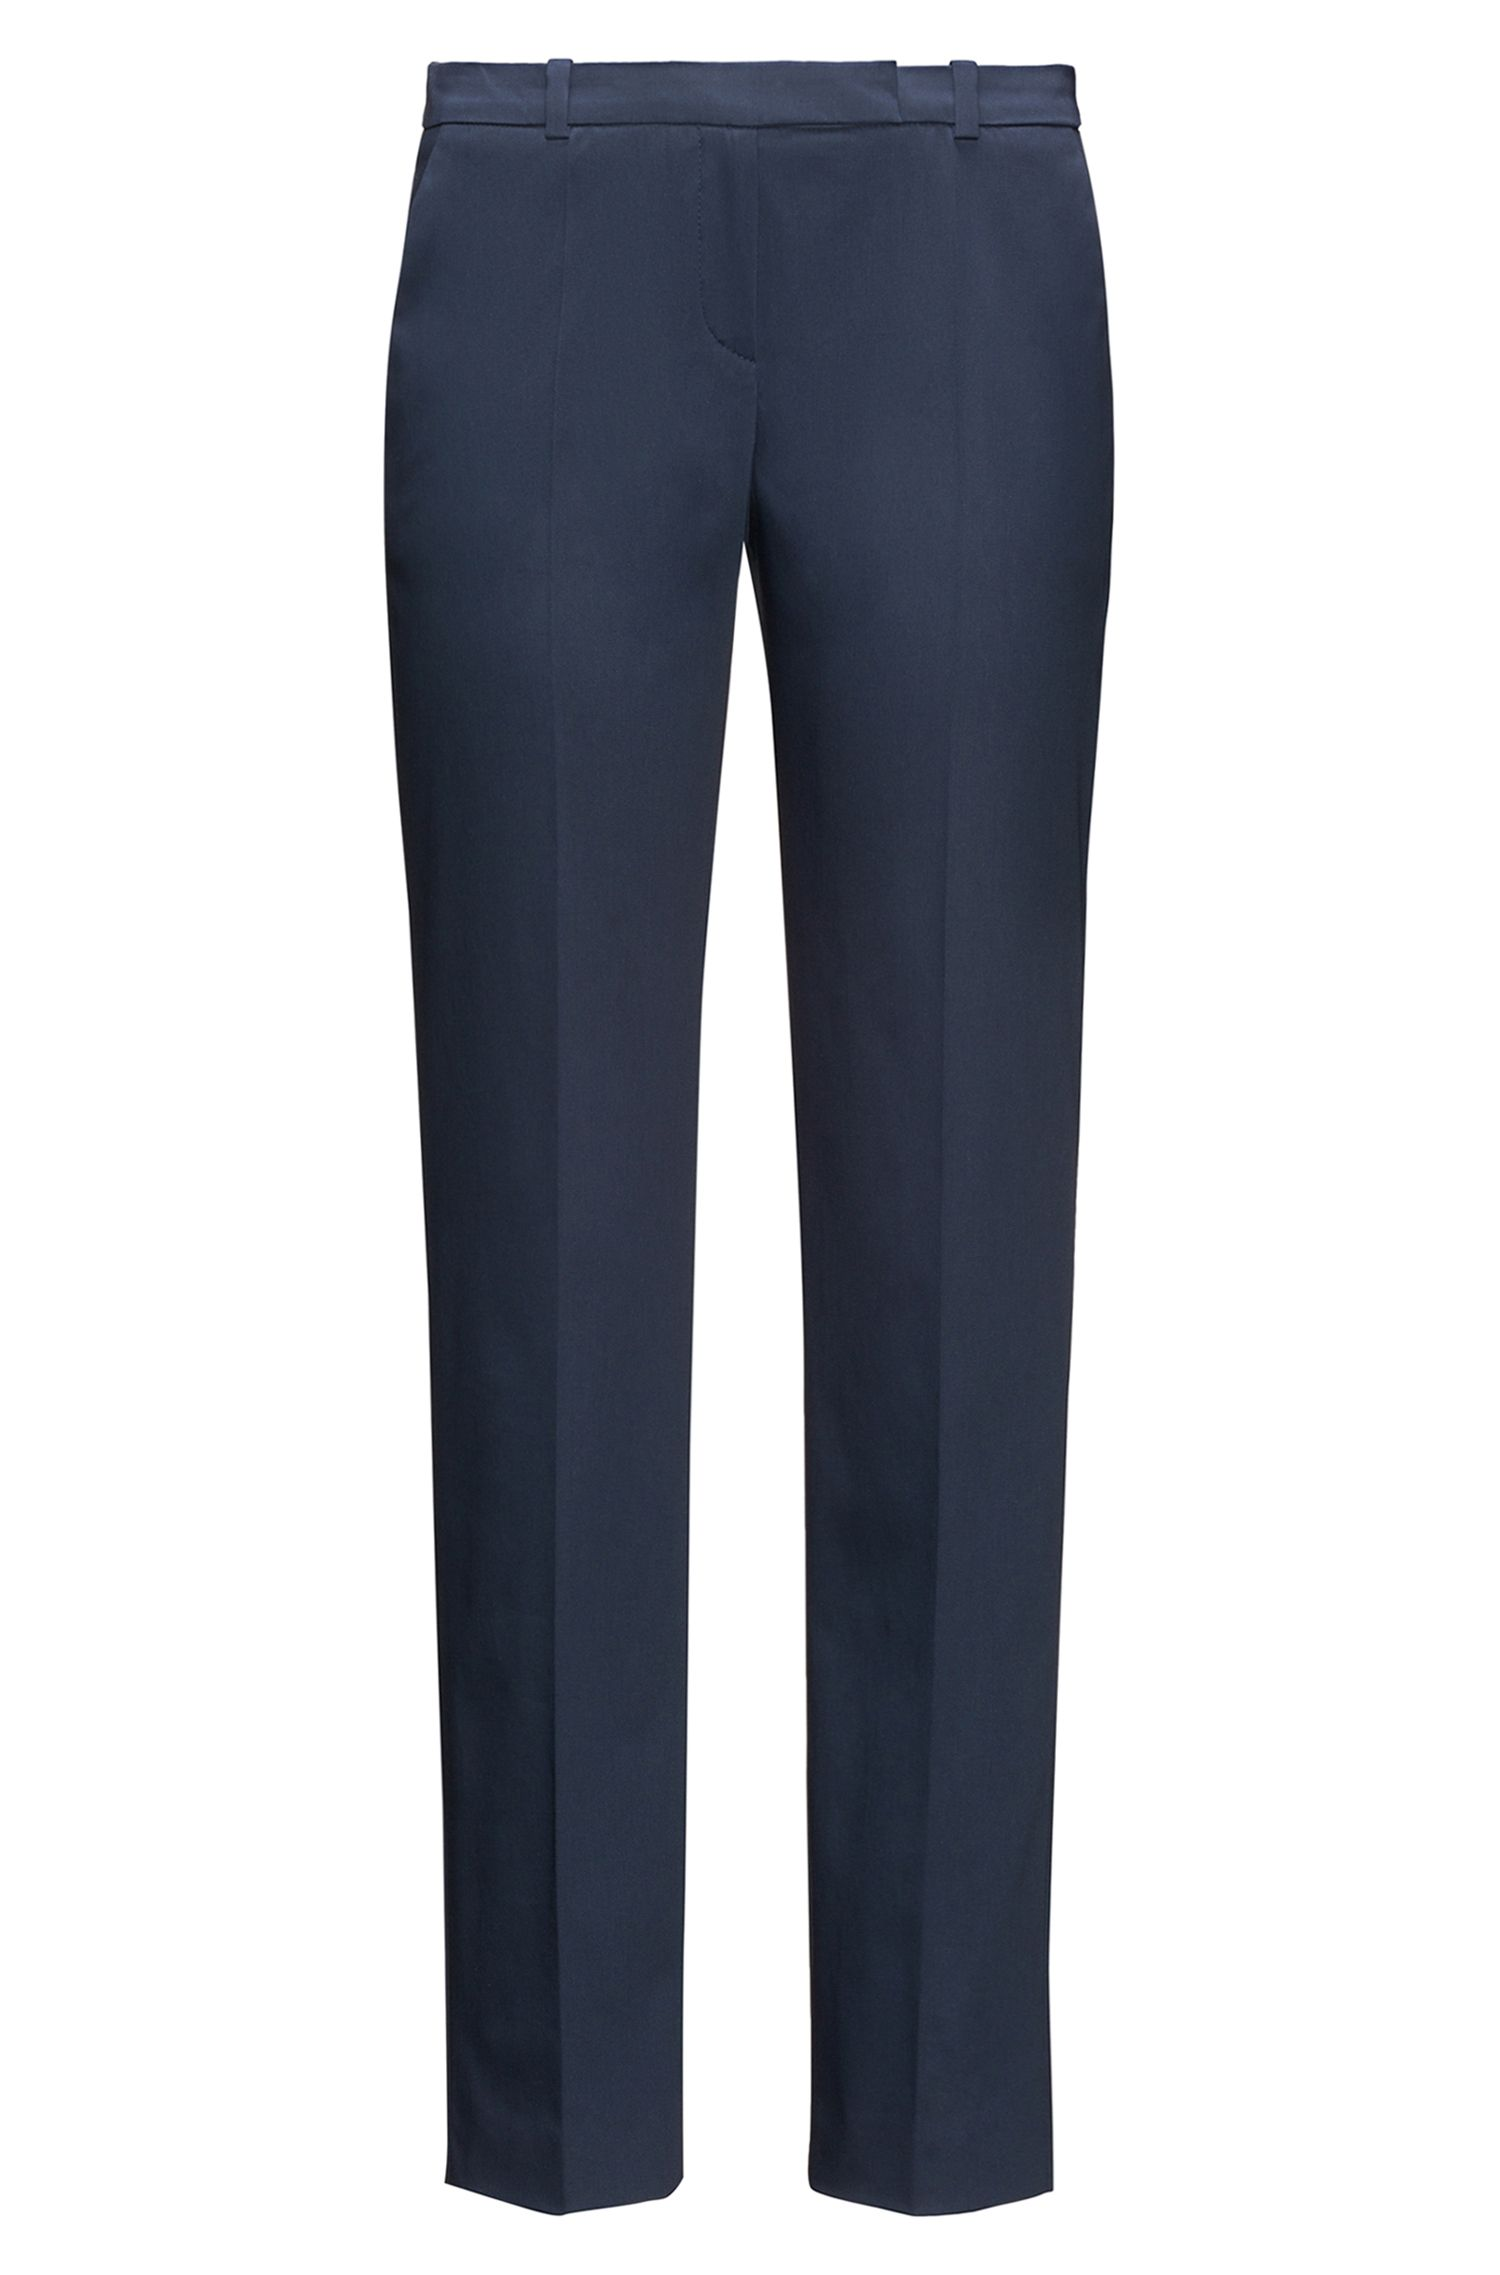 Pantalon Slim Fit en coton stretch : « Harile-3 »